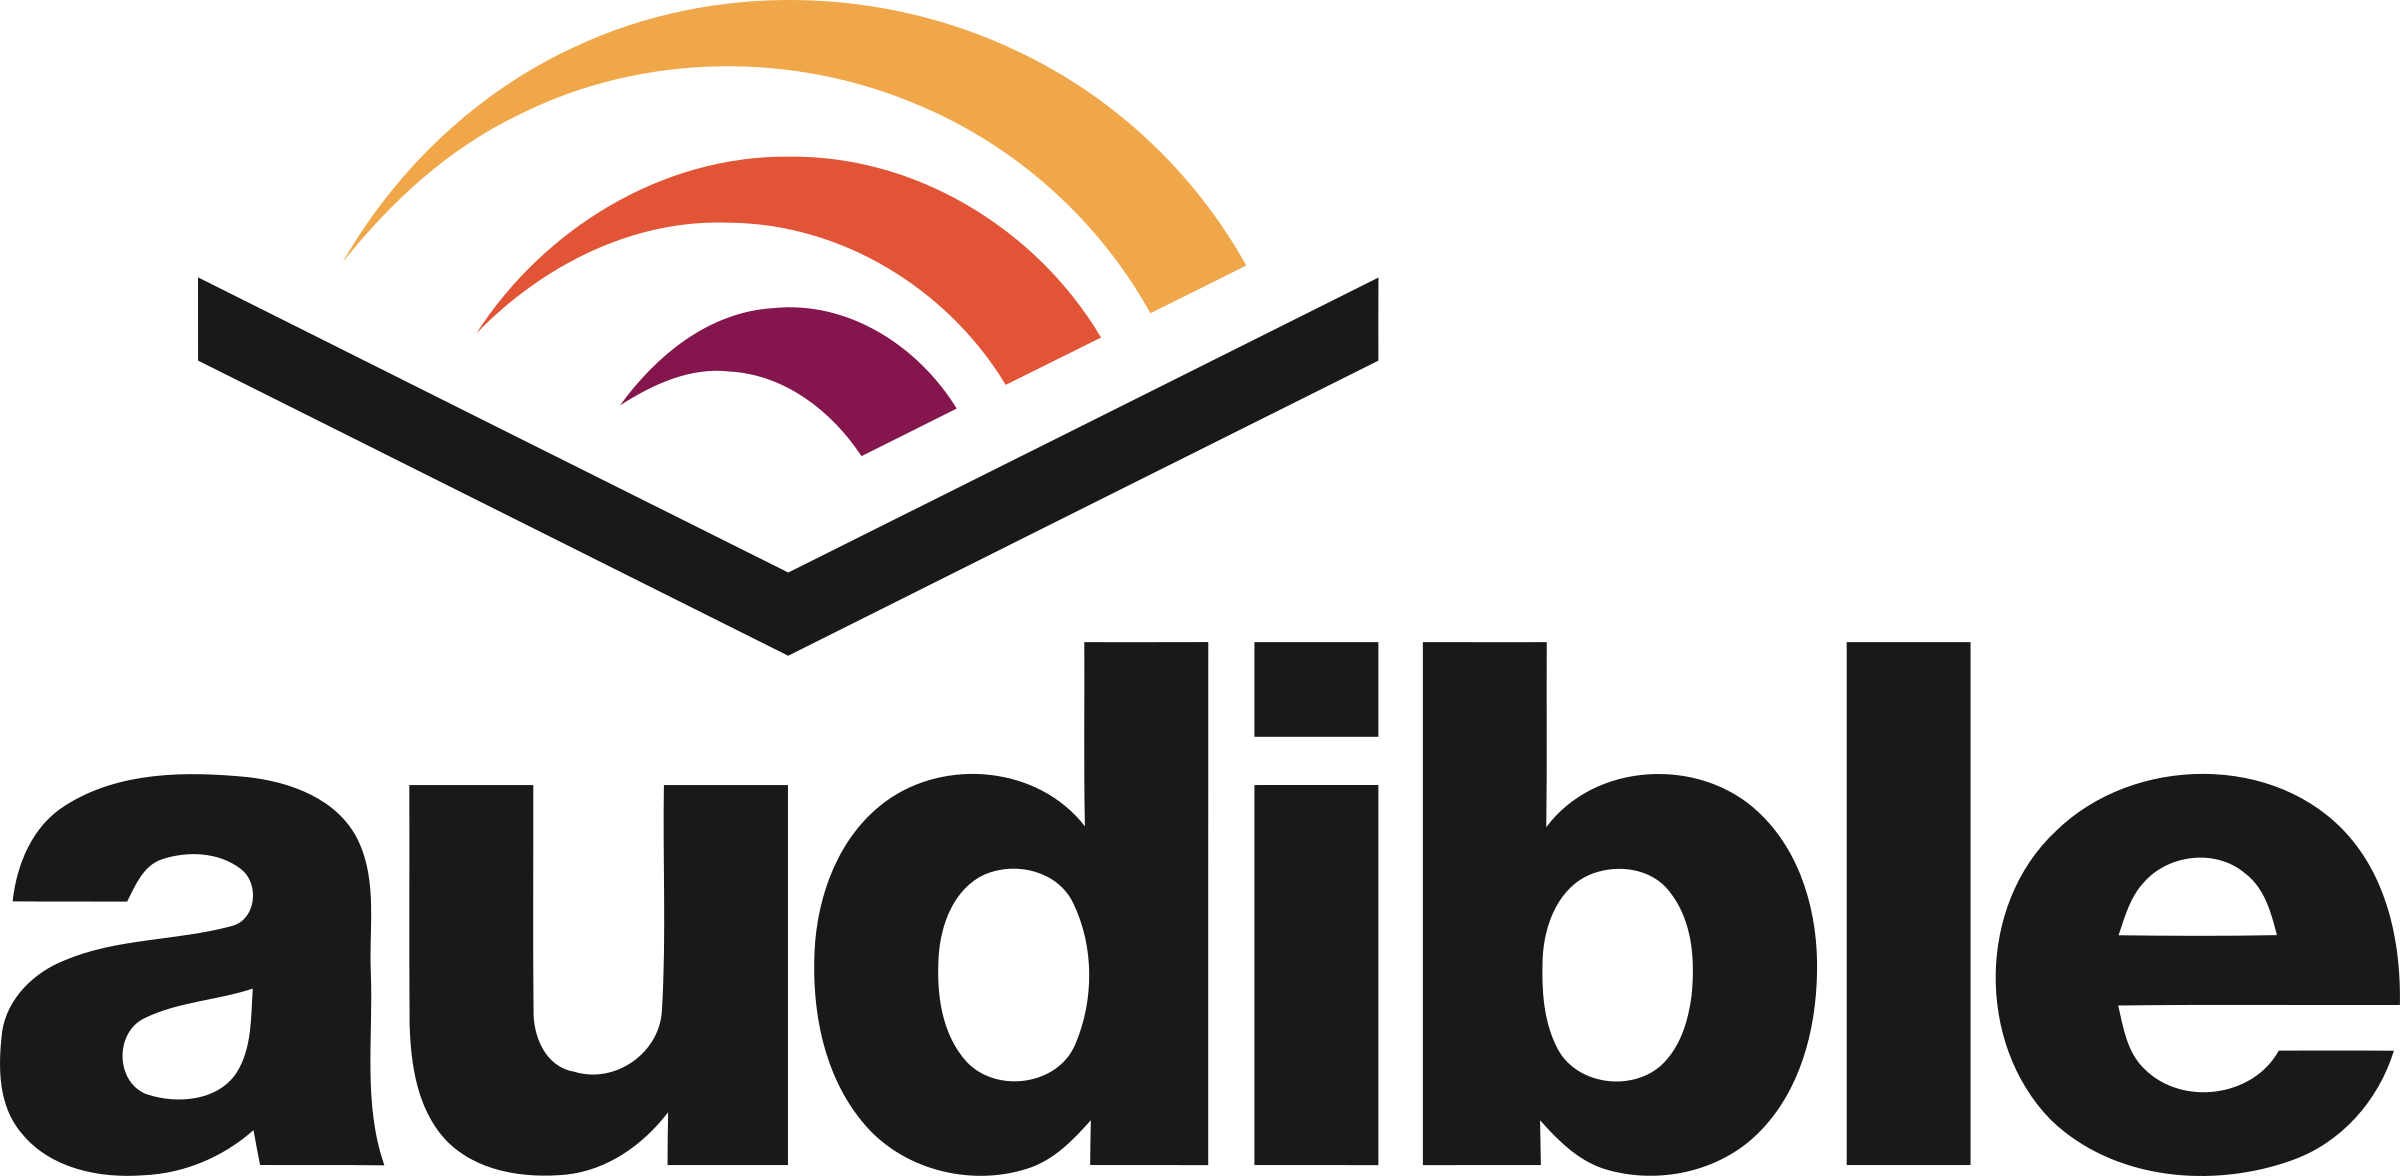 audible-logo-png-transparent.png